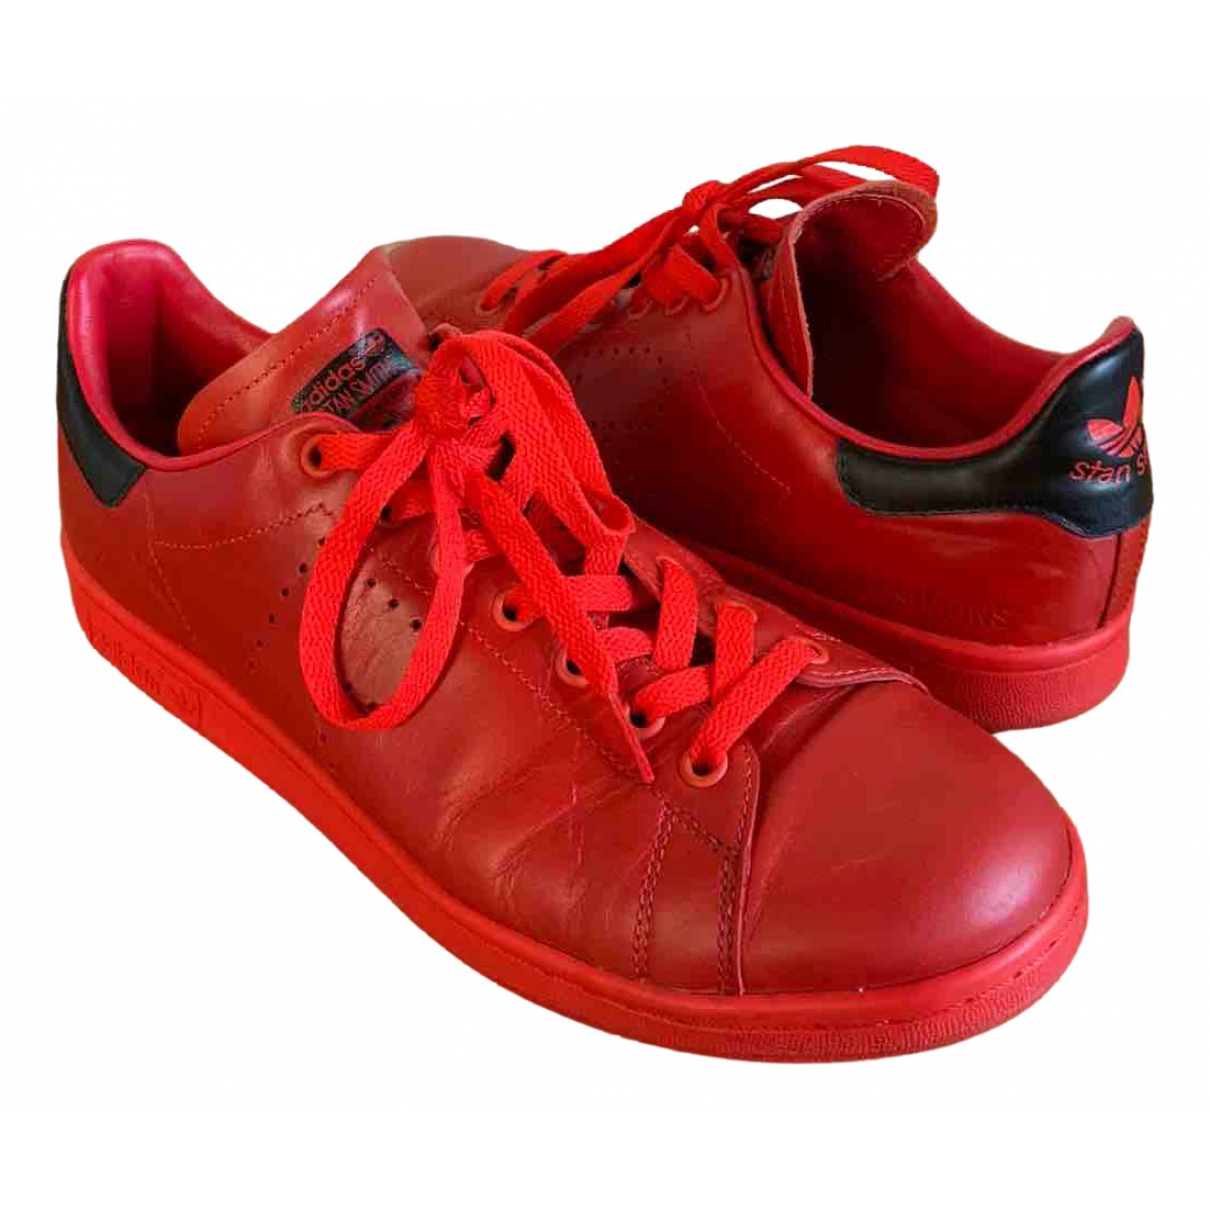 Adidas X Raf Simons Stan Smith Red Leather Trainers for Men 10.5 US